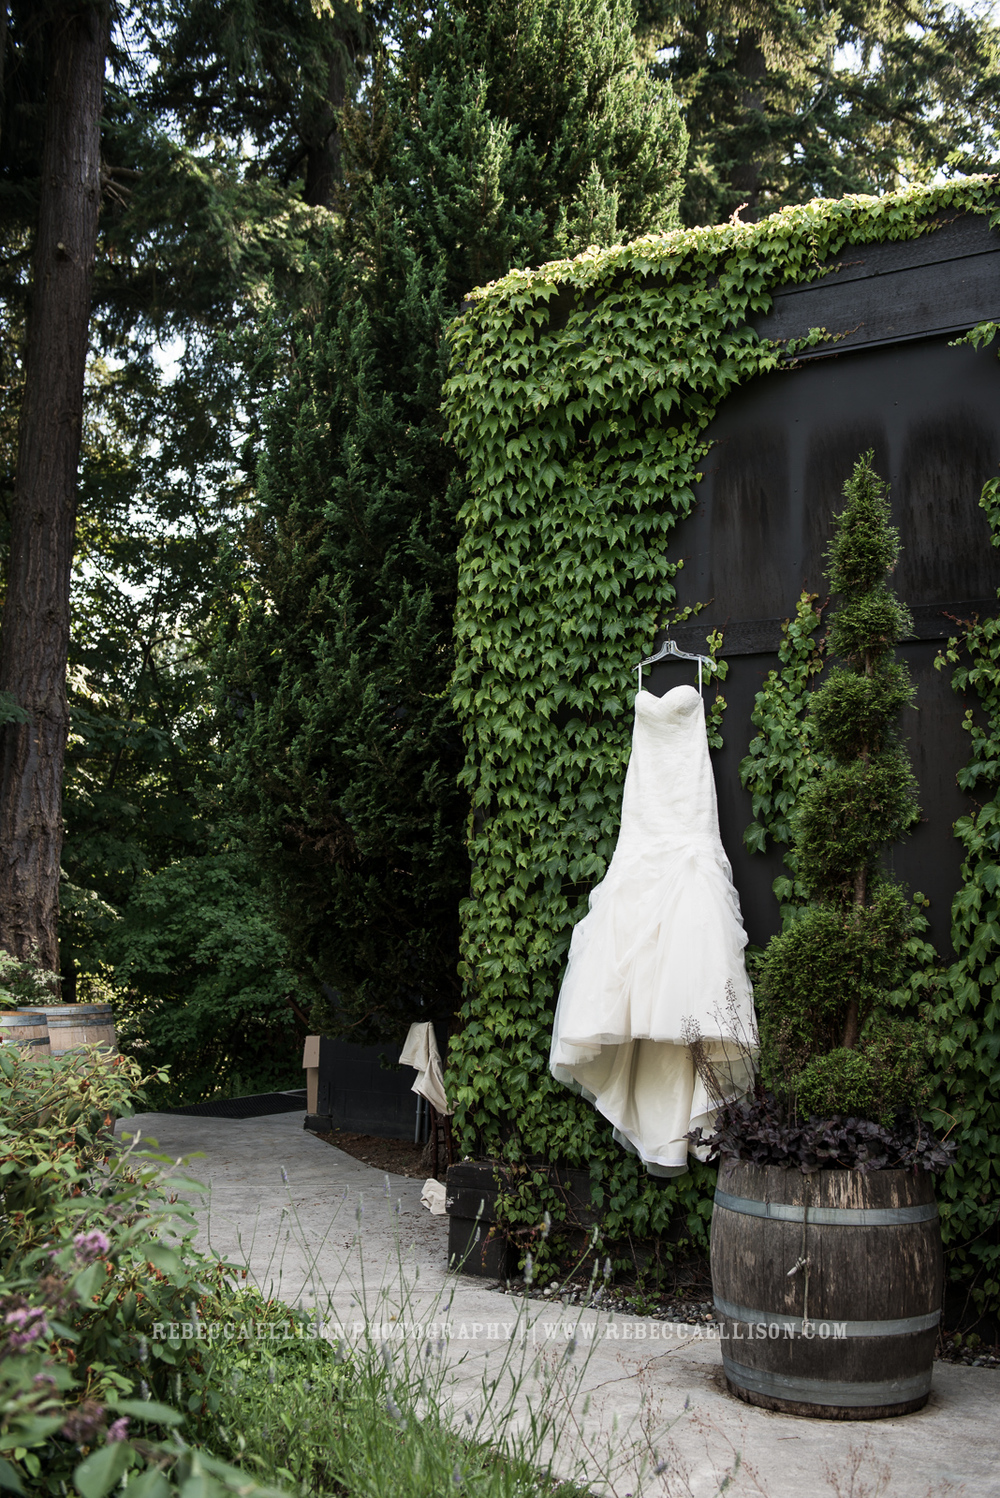 Wedding dress hanging in ivy |JM Cellars Wedding | Intimate Winery Wedding | Seattle Wedding Photographer | www.rebeccaellison.com